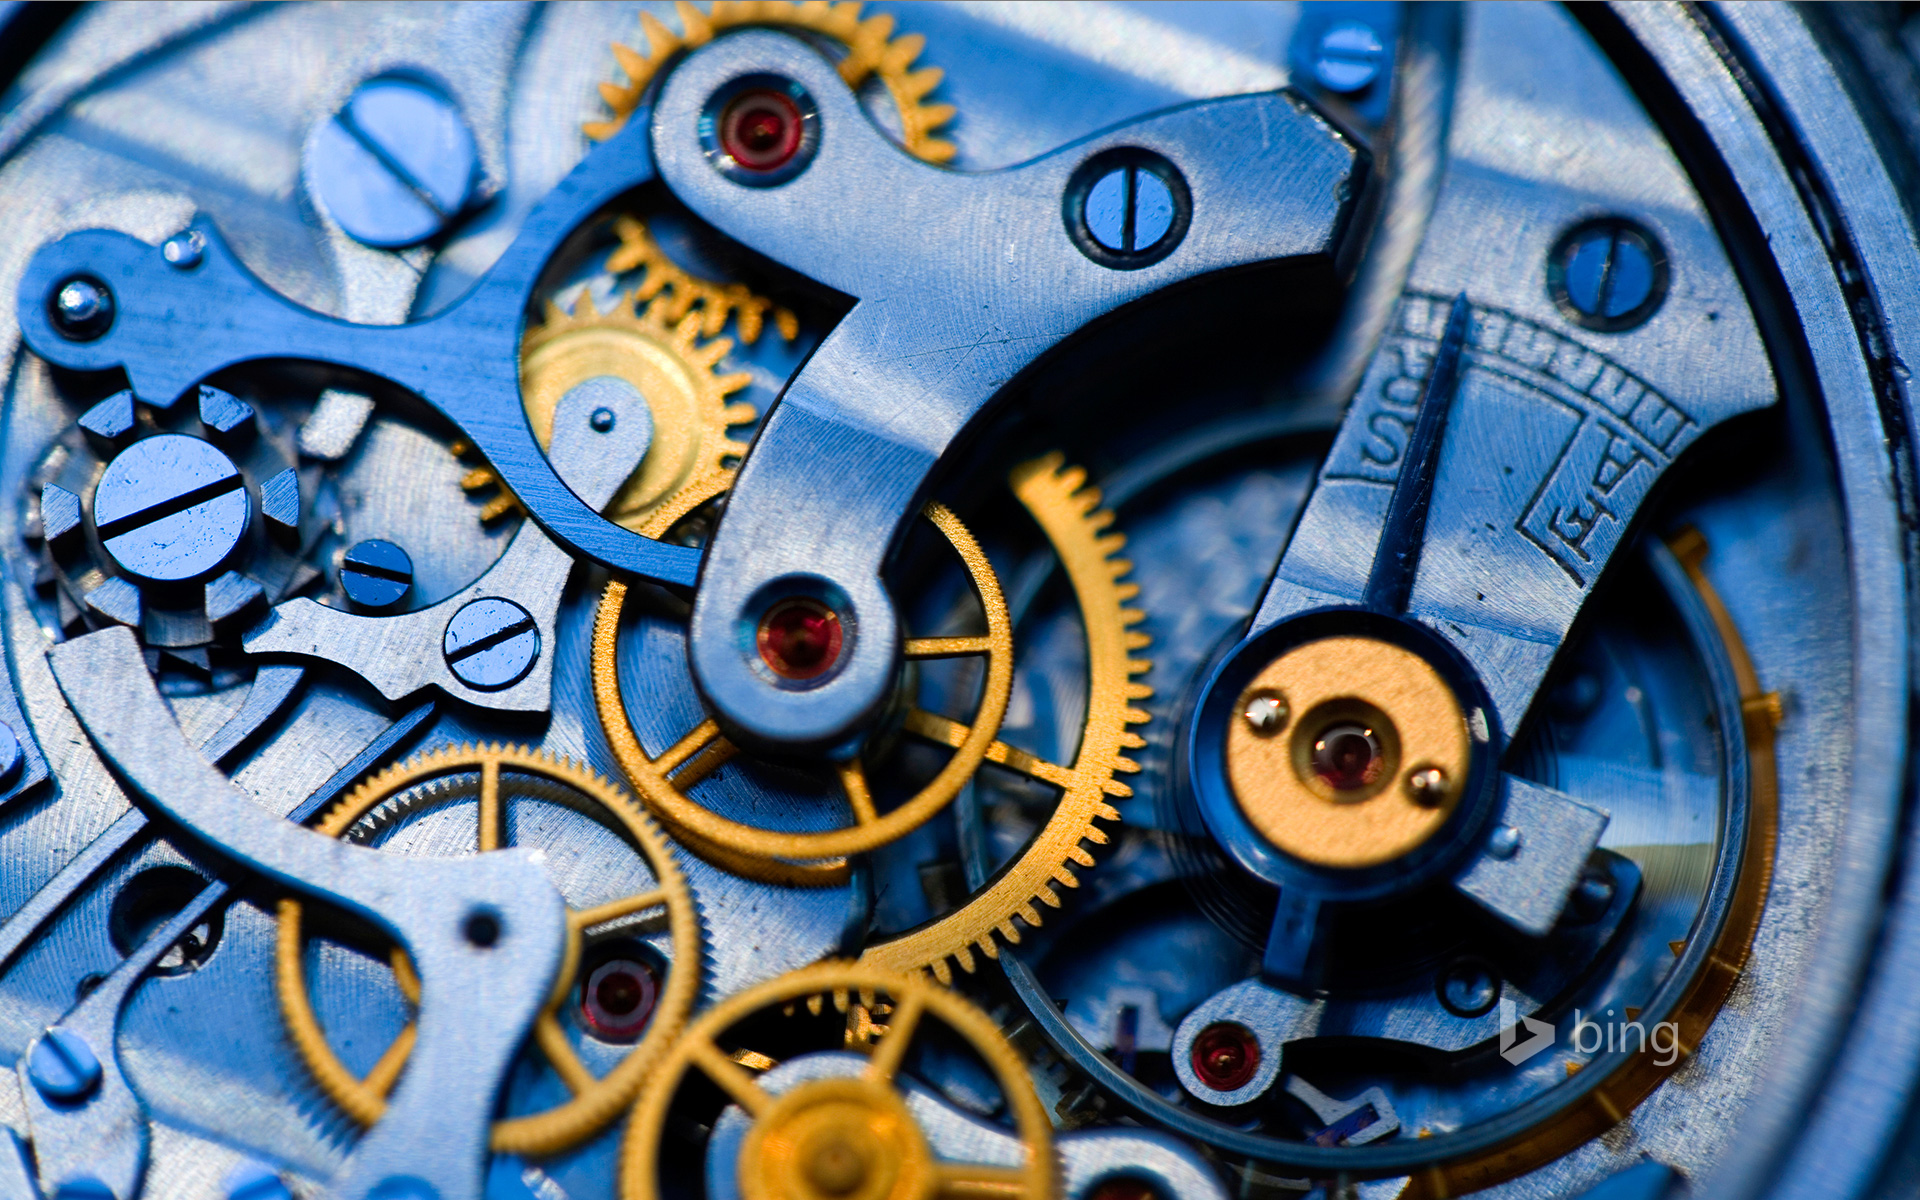 Gears and rubies inside an antique watch